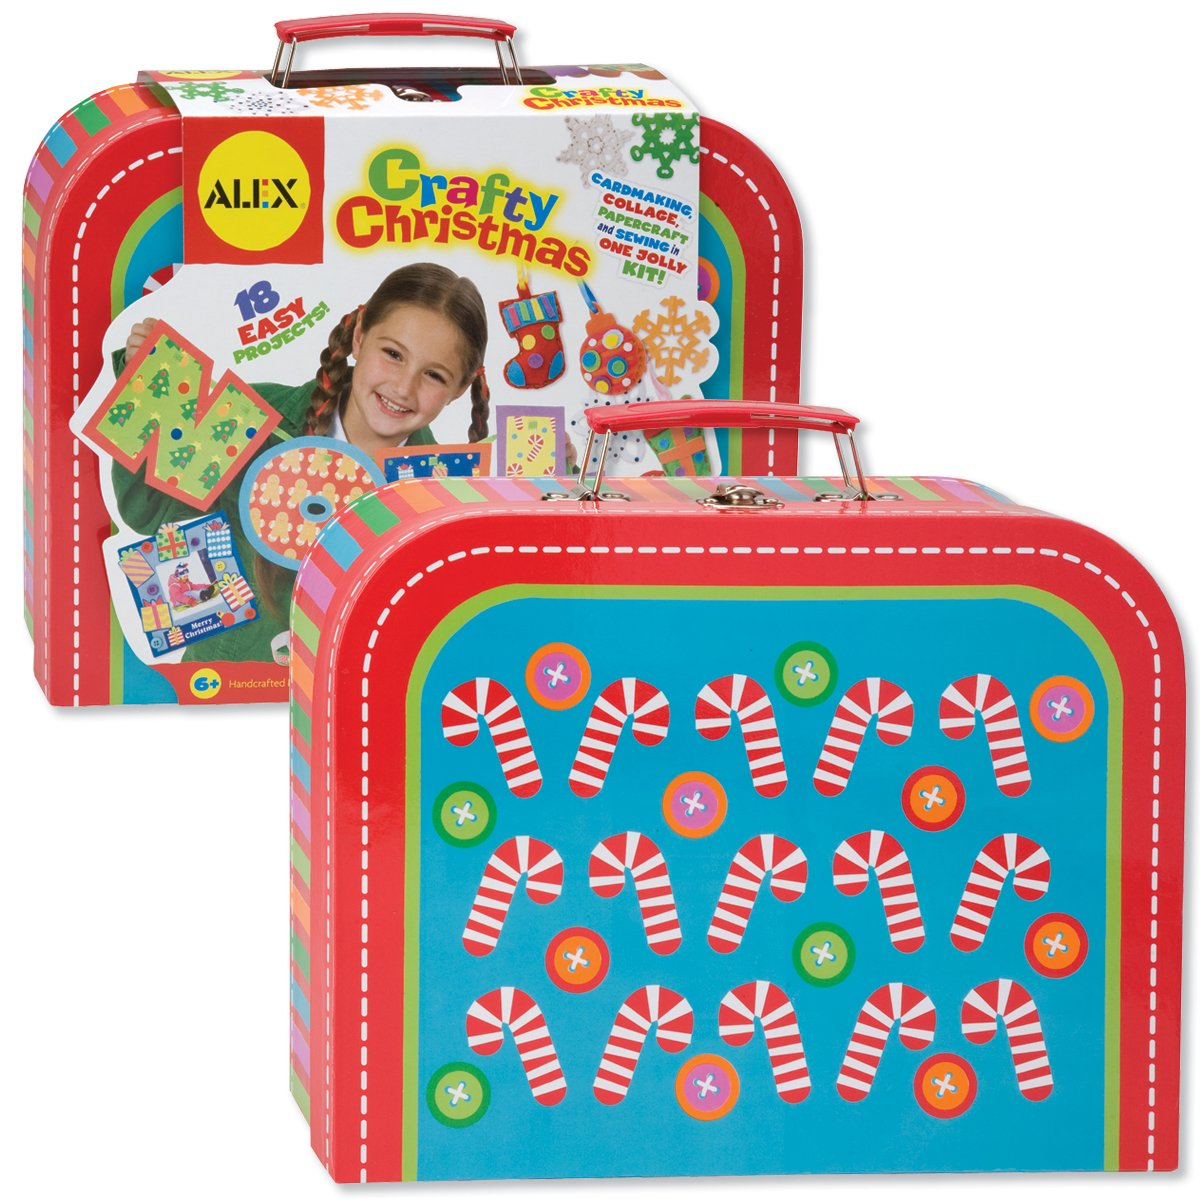 ALEX Toys Crafts Crafty Christmas Kit with Suitcase